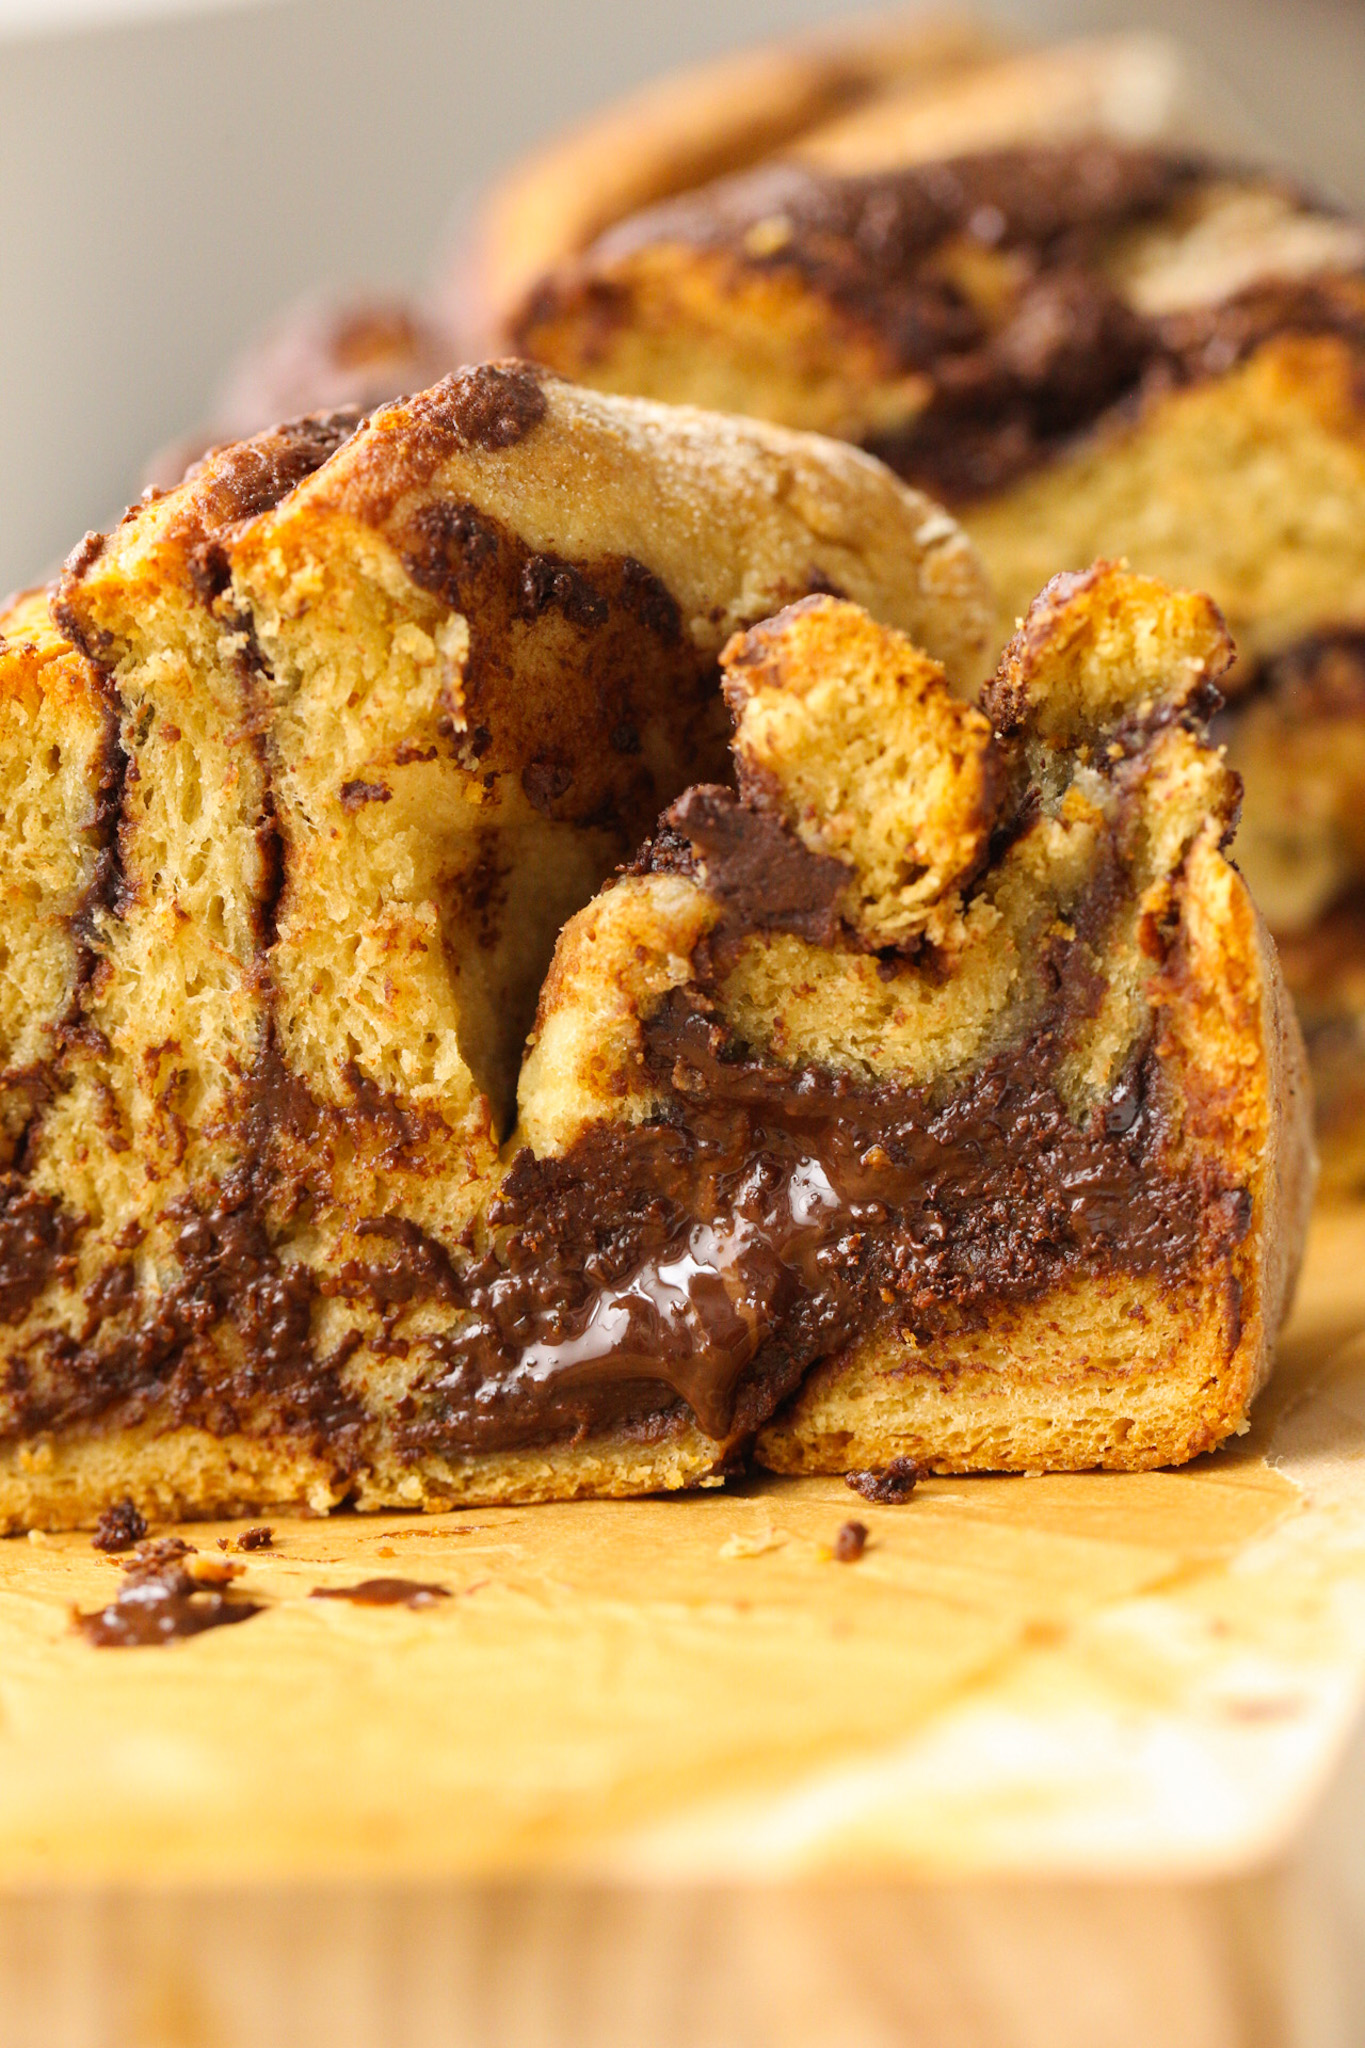 melty chocolate vegan babka